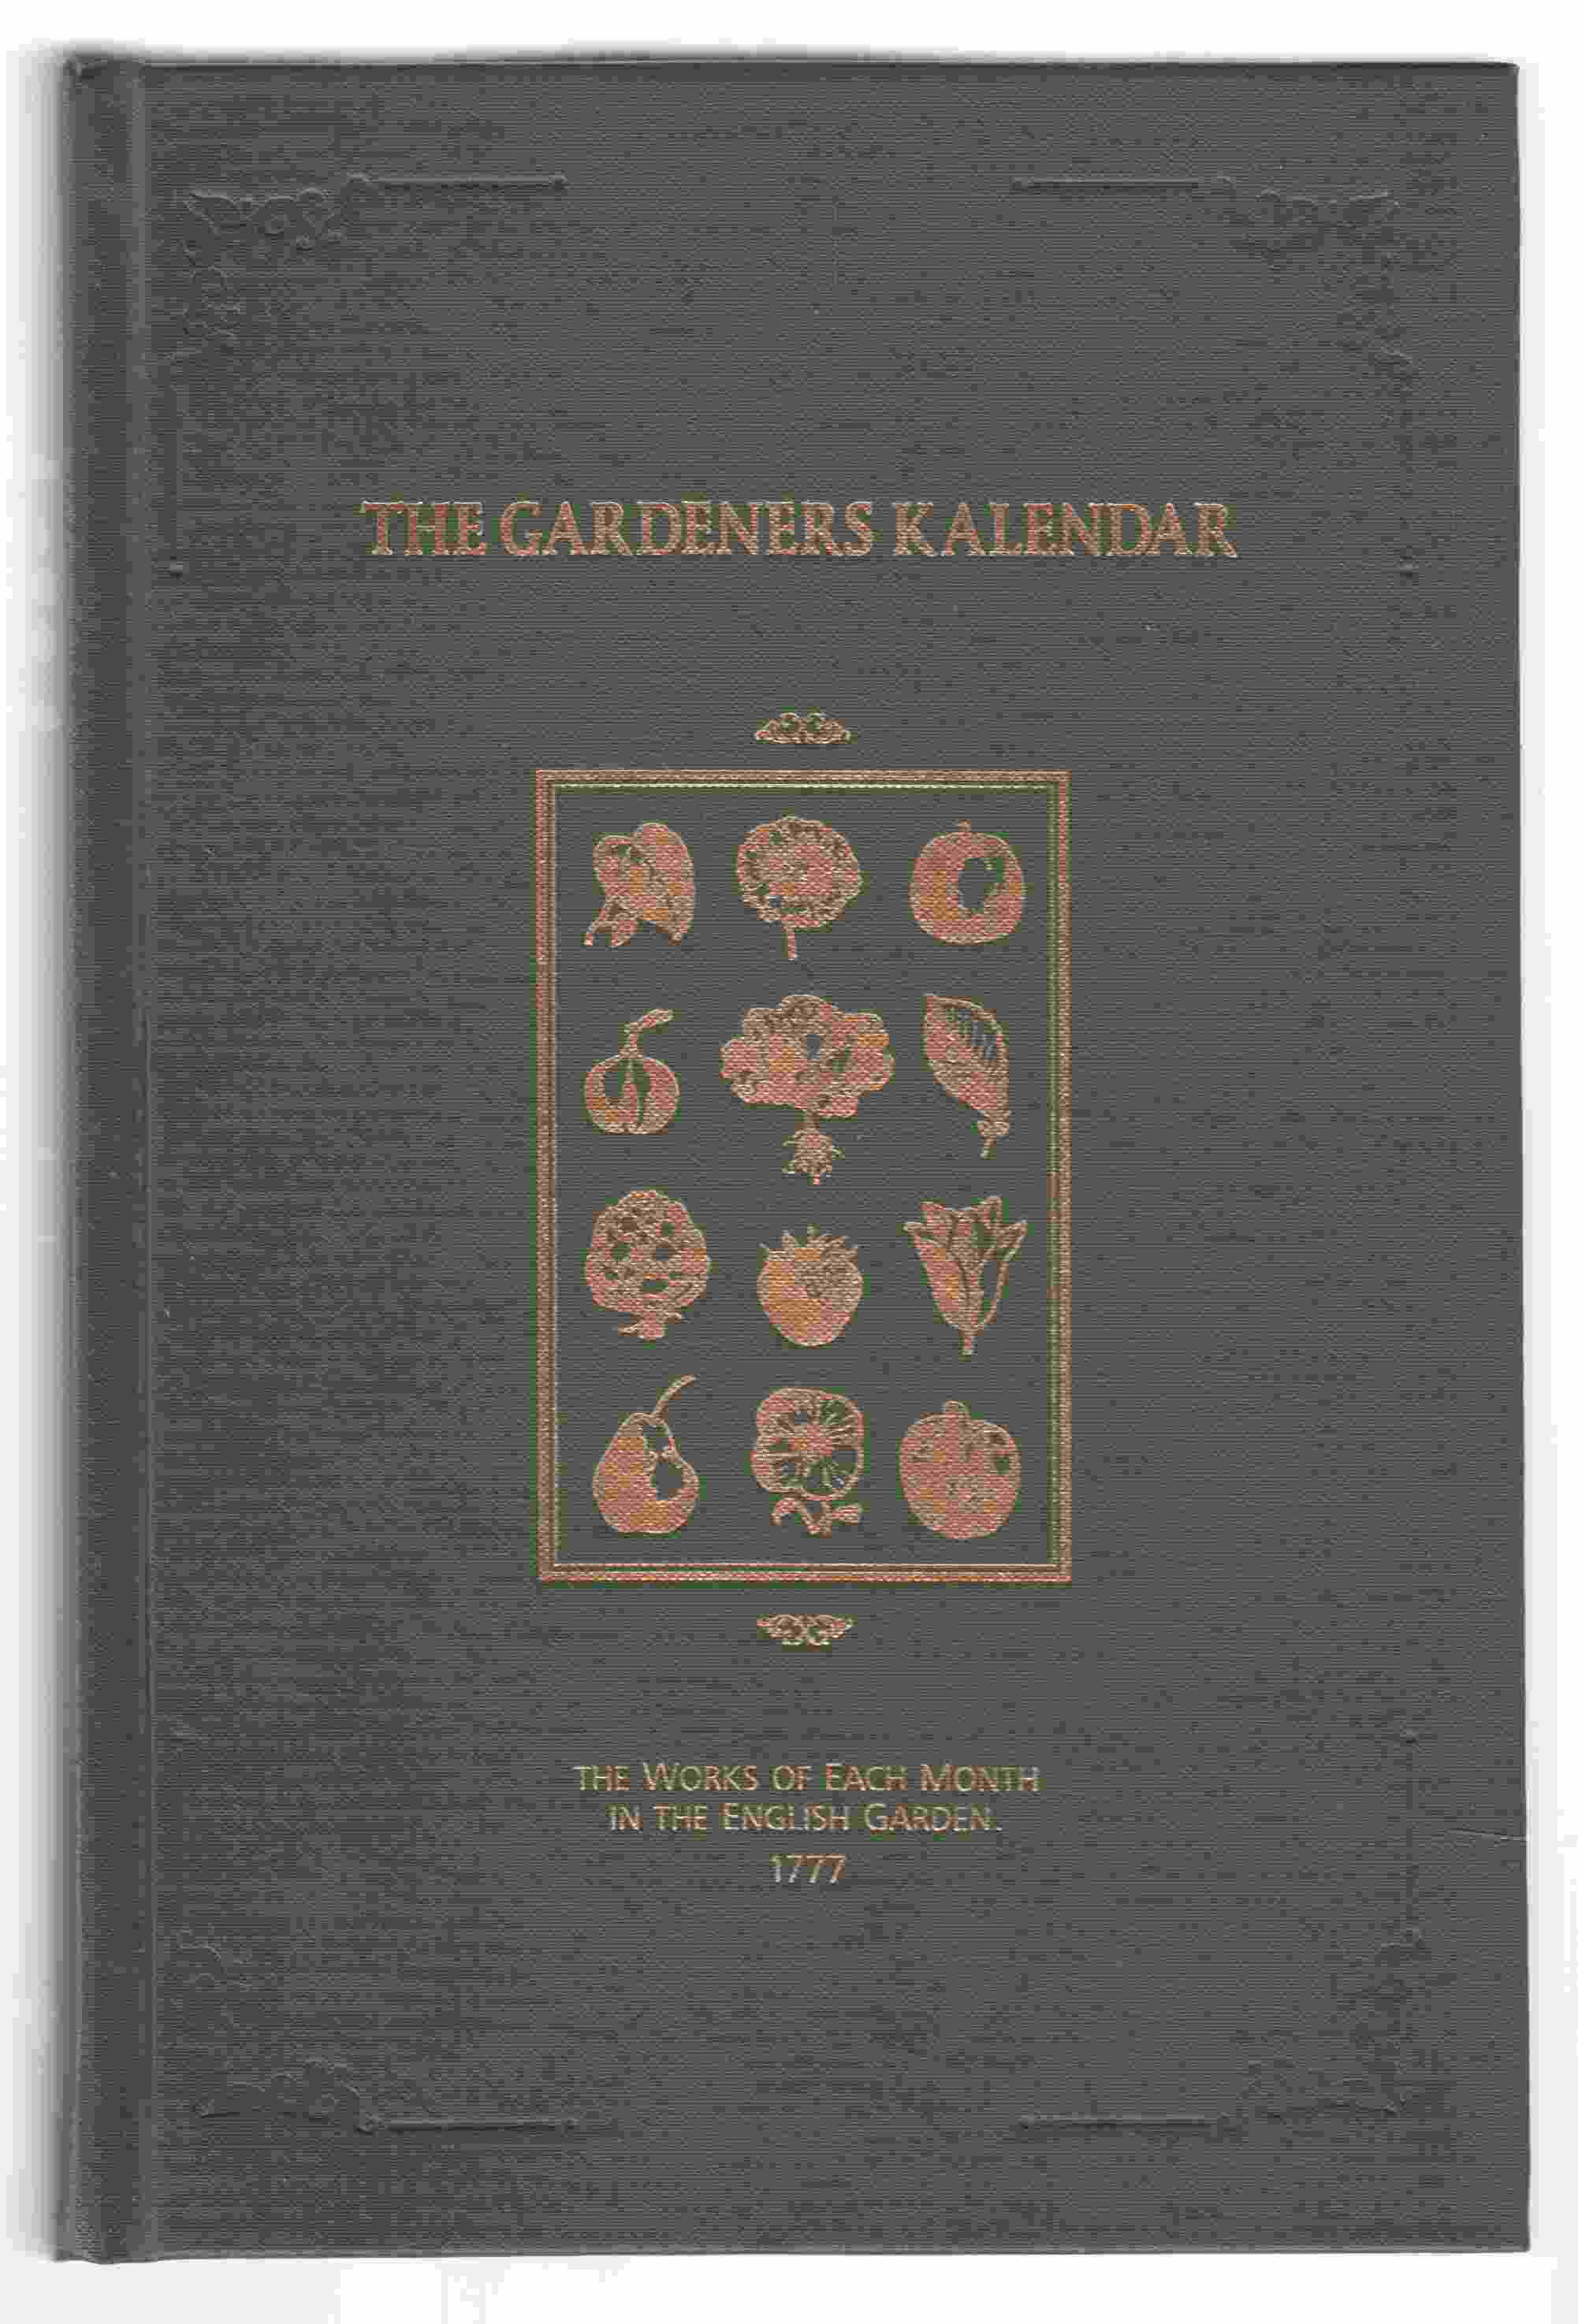 Image for The Gardeners Kalendar The Works of Each Month in the English Garden 1777